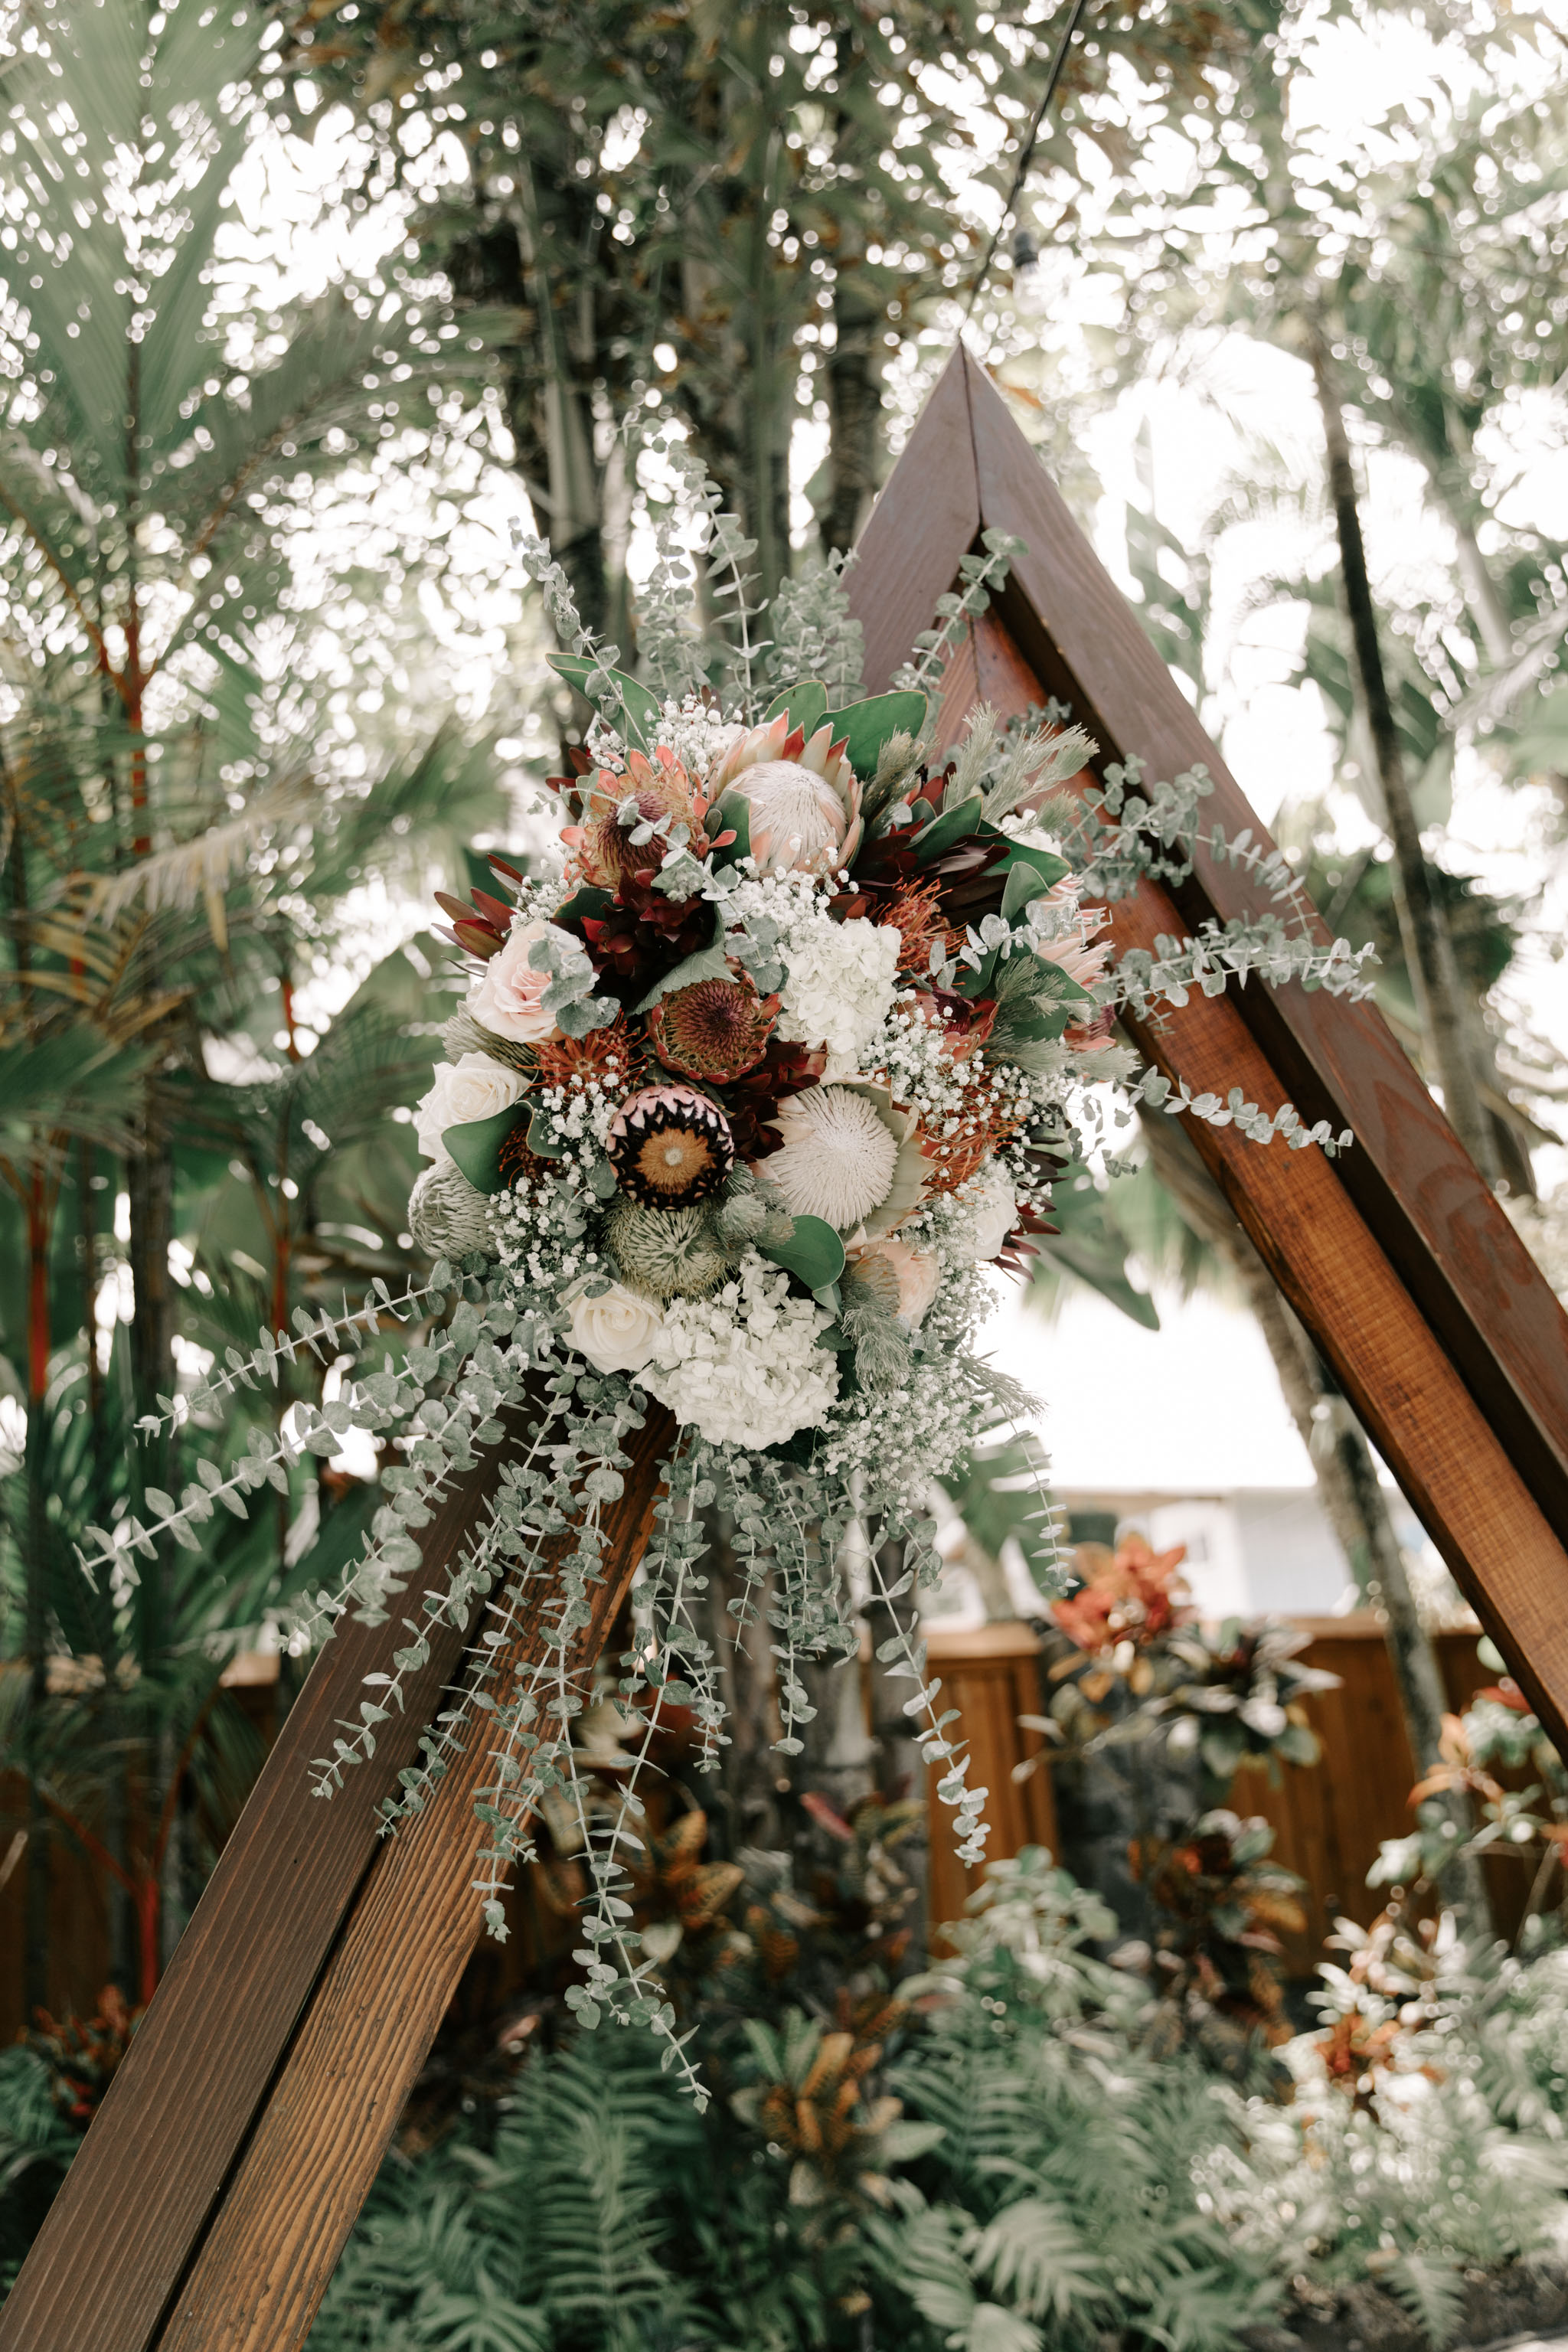 Tropical Protea Wedding Arch Florals - Hale Koa Phineas Estate Wedding By Oahu Wedding Photographer Desiree Leilani